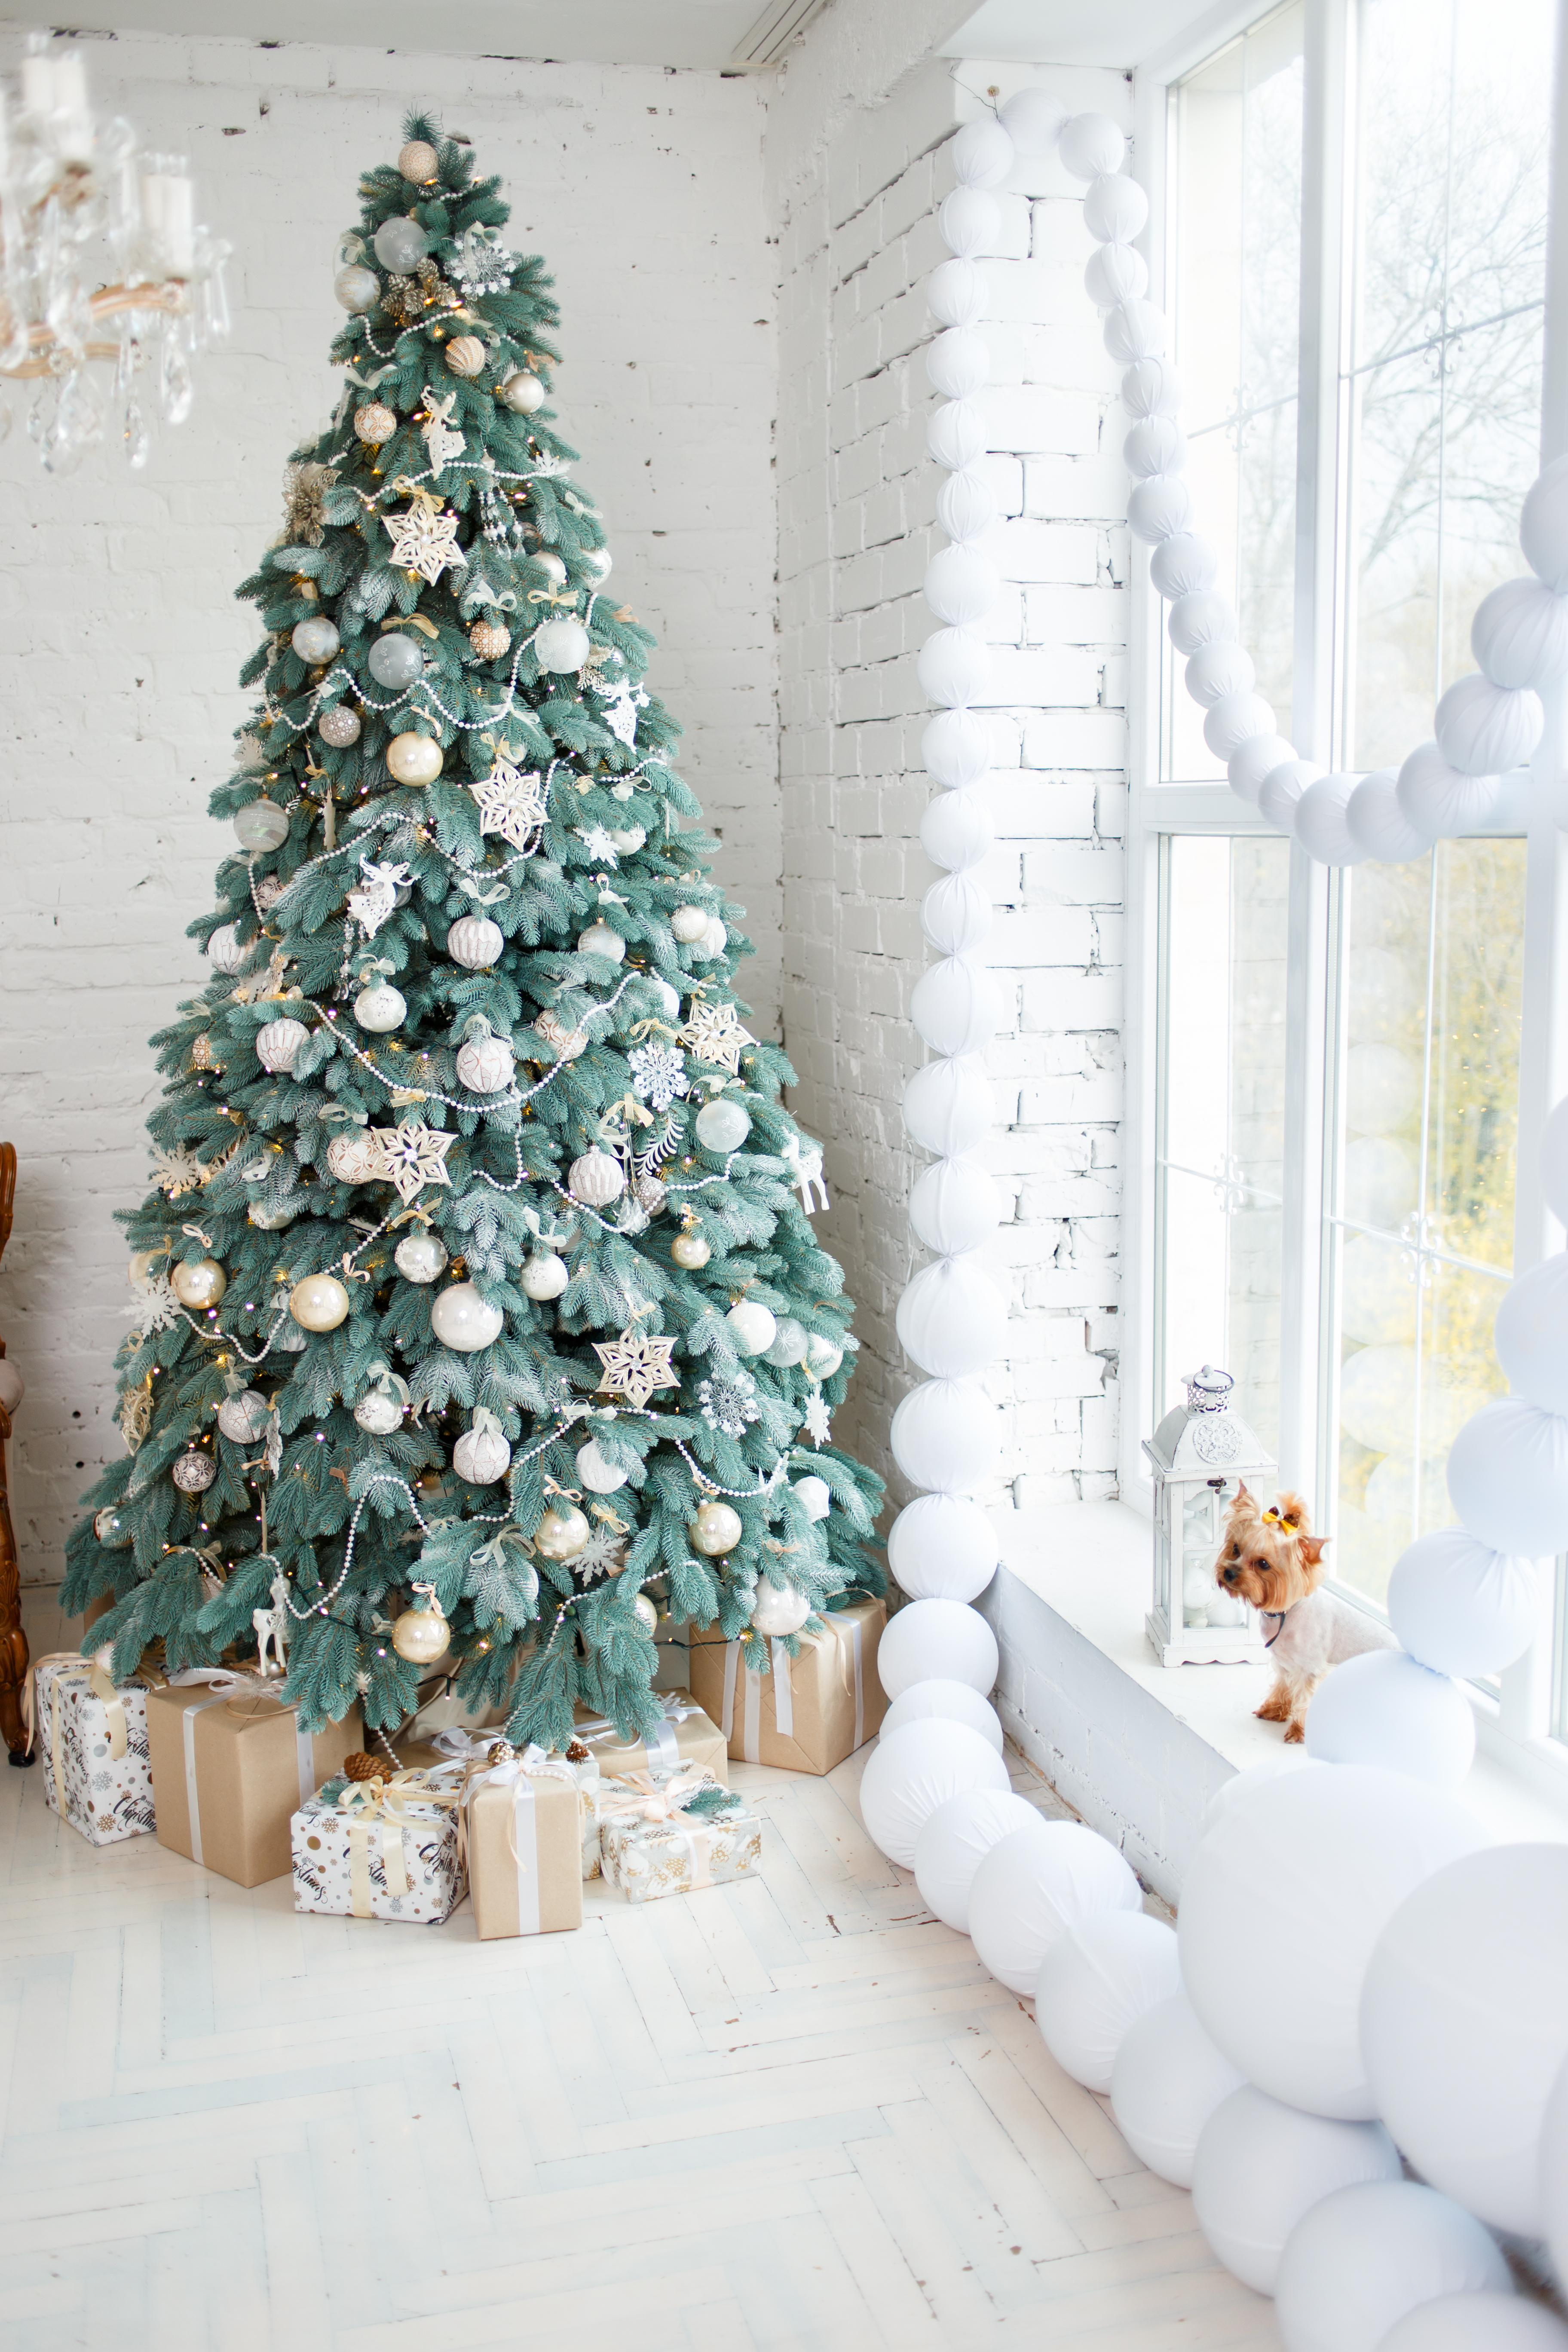 New Home, New Holiday Decorations: Simple Interior Styling for New ...